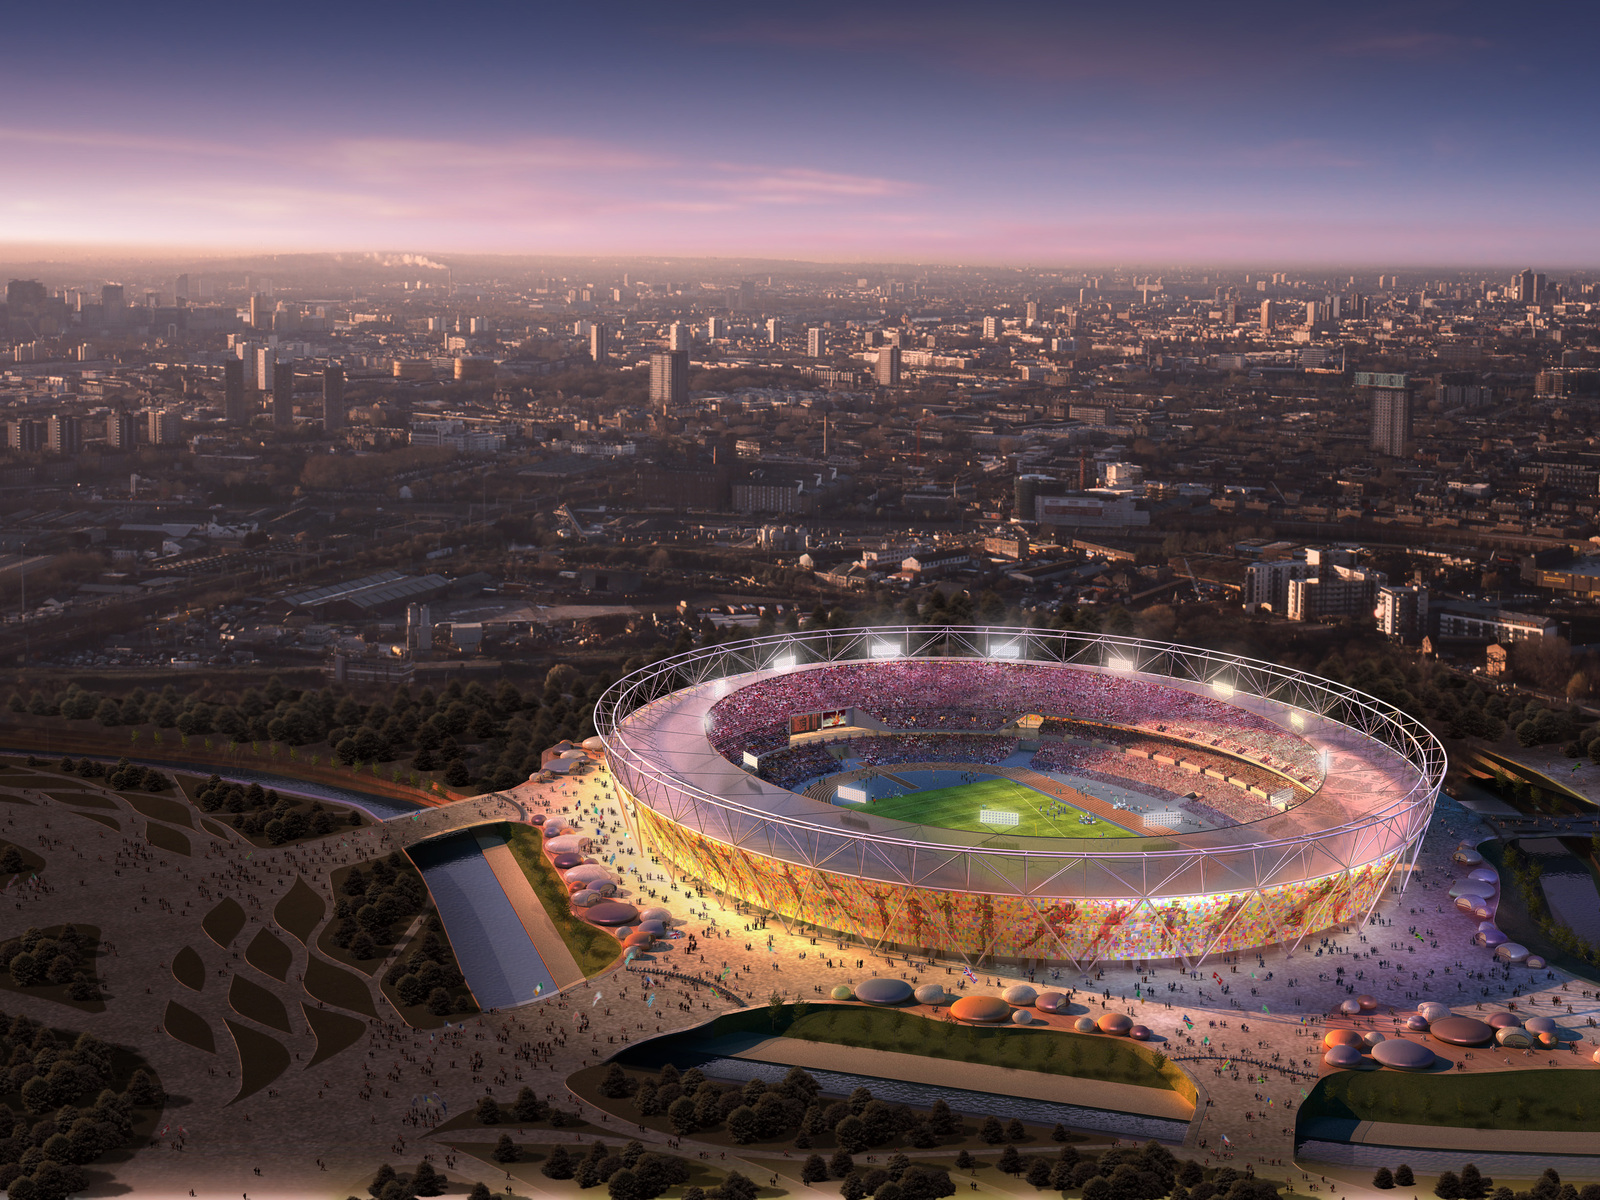 http://2.bp.blogspot.com/-sVS3Cllnw00/UQGZn7N9o8I/AAAAAAAAKXA/CK7fKUB3dSU/s1600/Amazing_London_Olympic_Stadium_2013_England_Hd_Desktop_Wallpaper_citiesandteams.blogspot.com.jpg